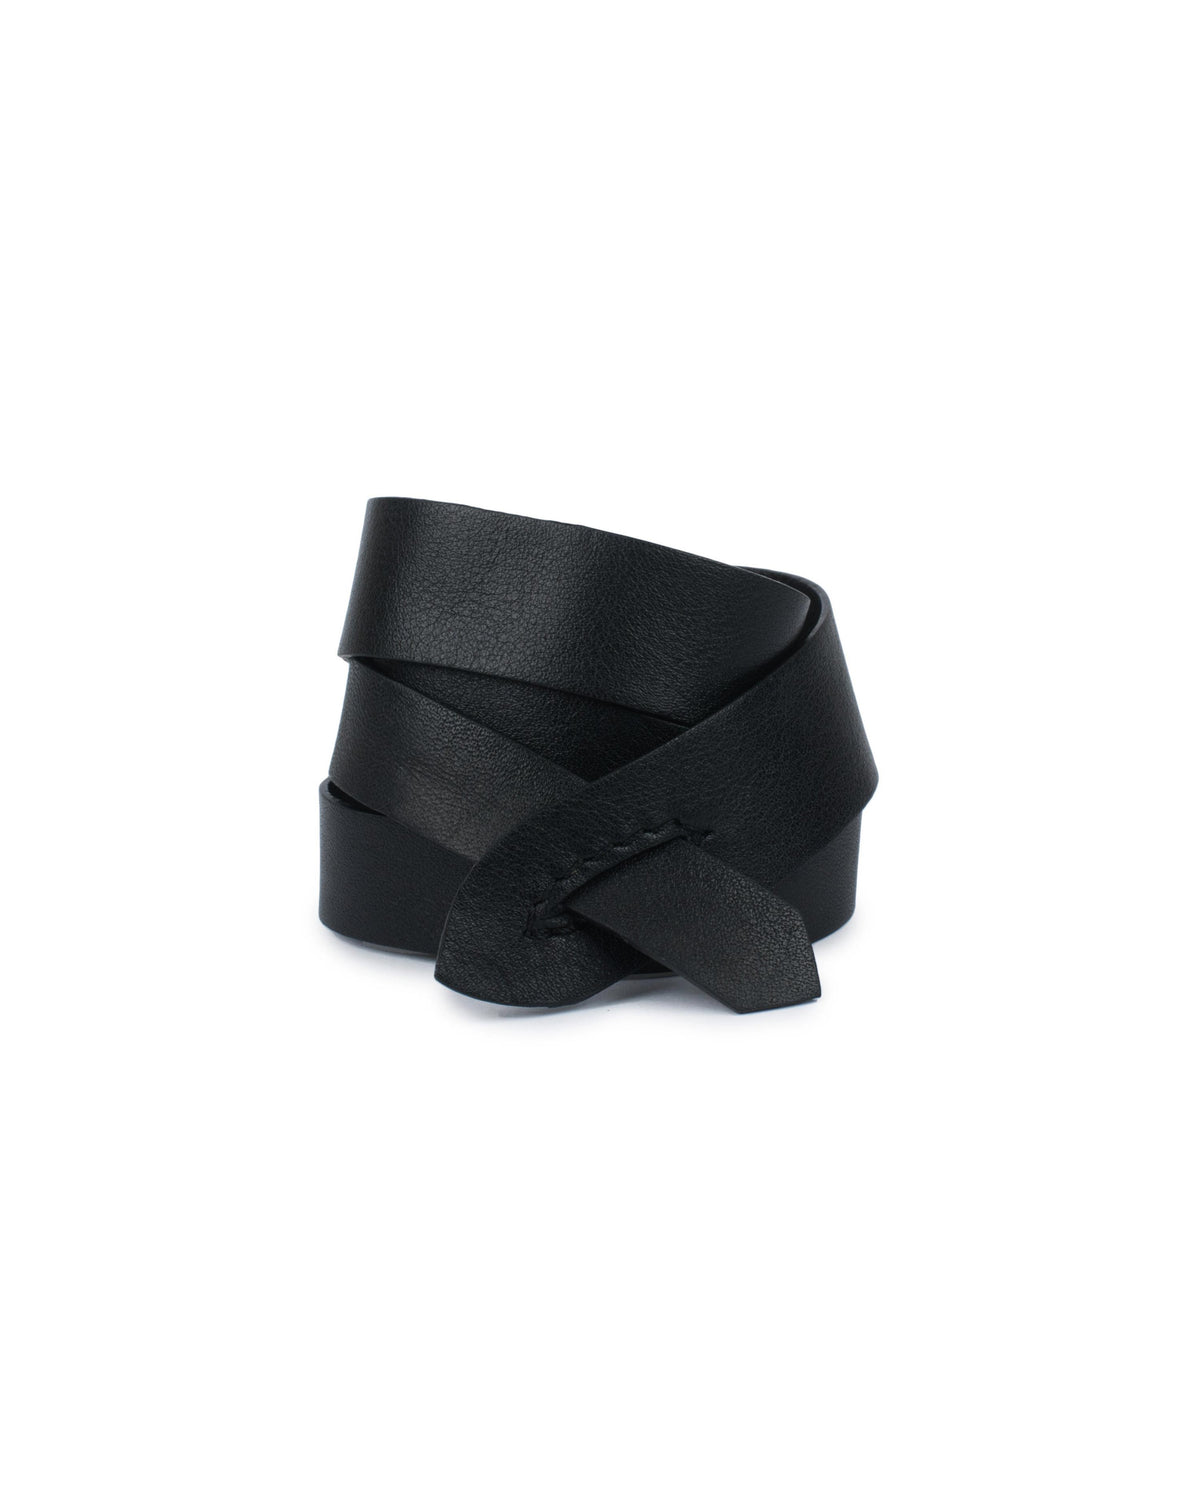 GIRONA WRIST WRAP in Black Napa